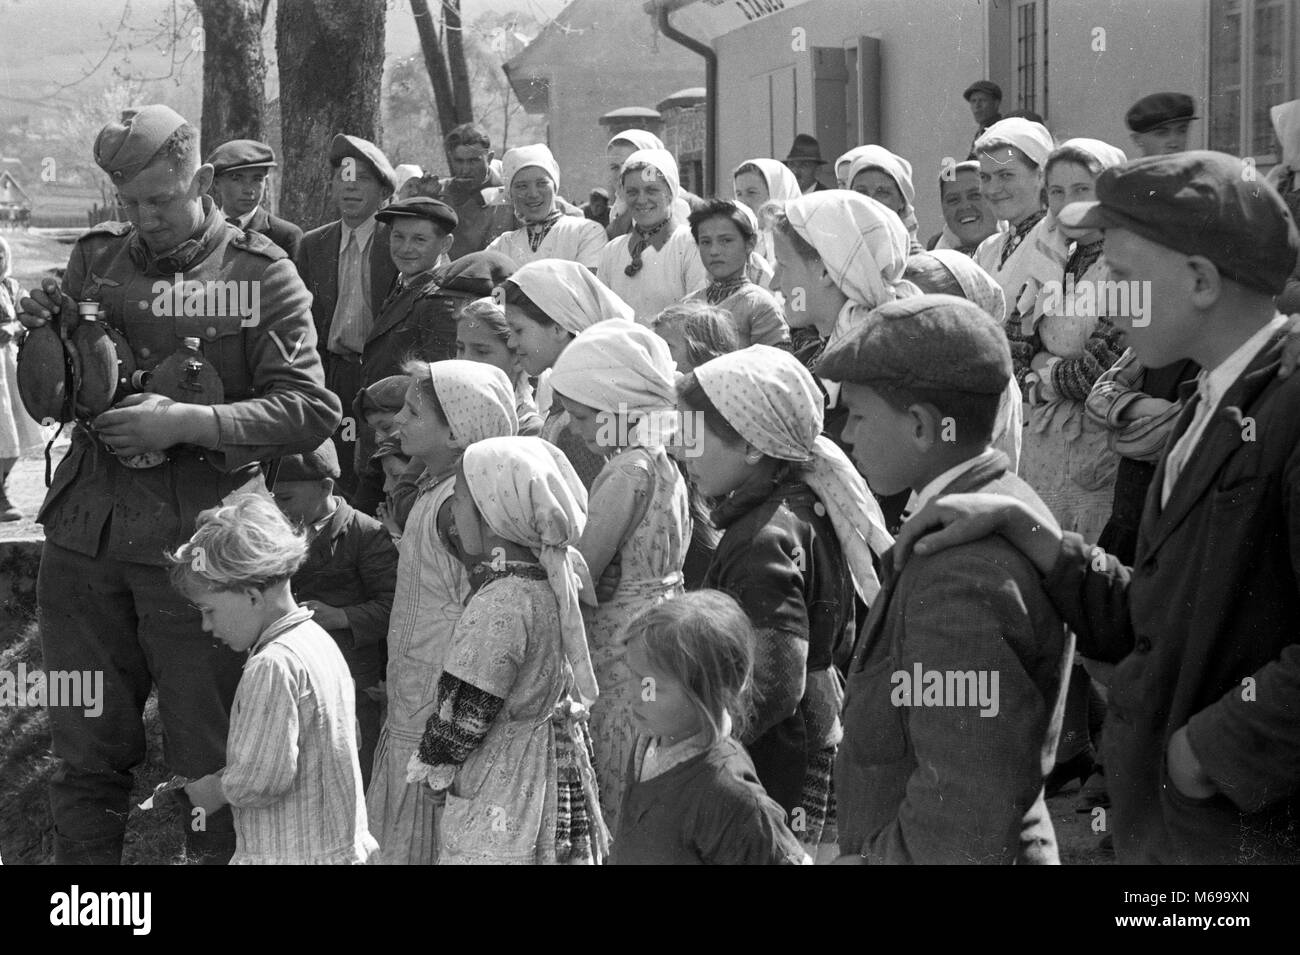 Local people watching German soldiers filling water bottles in Yugoslavia in April 1941 during WW2 German invasion - Stock Image